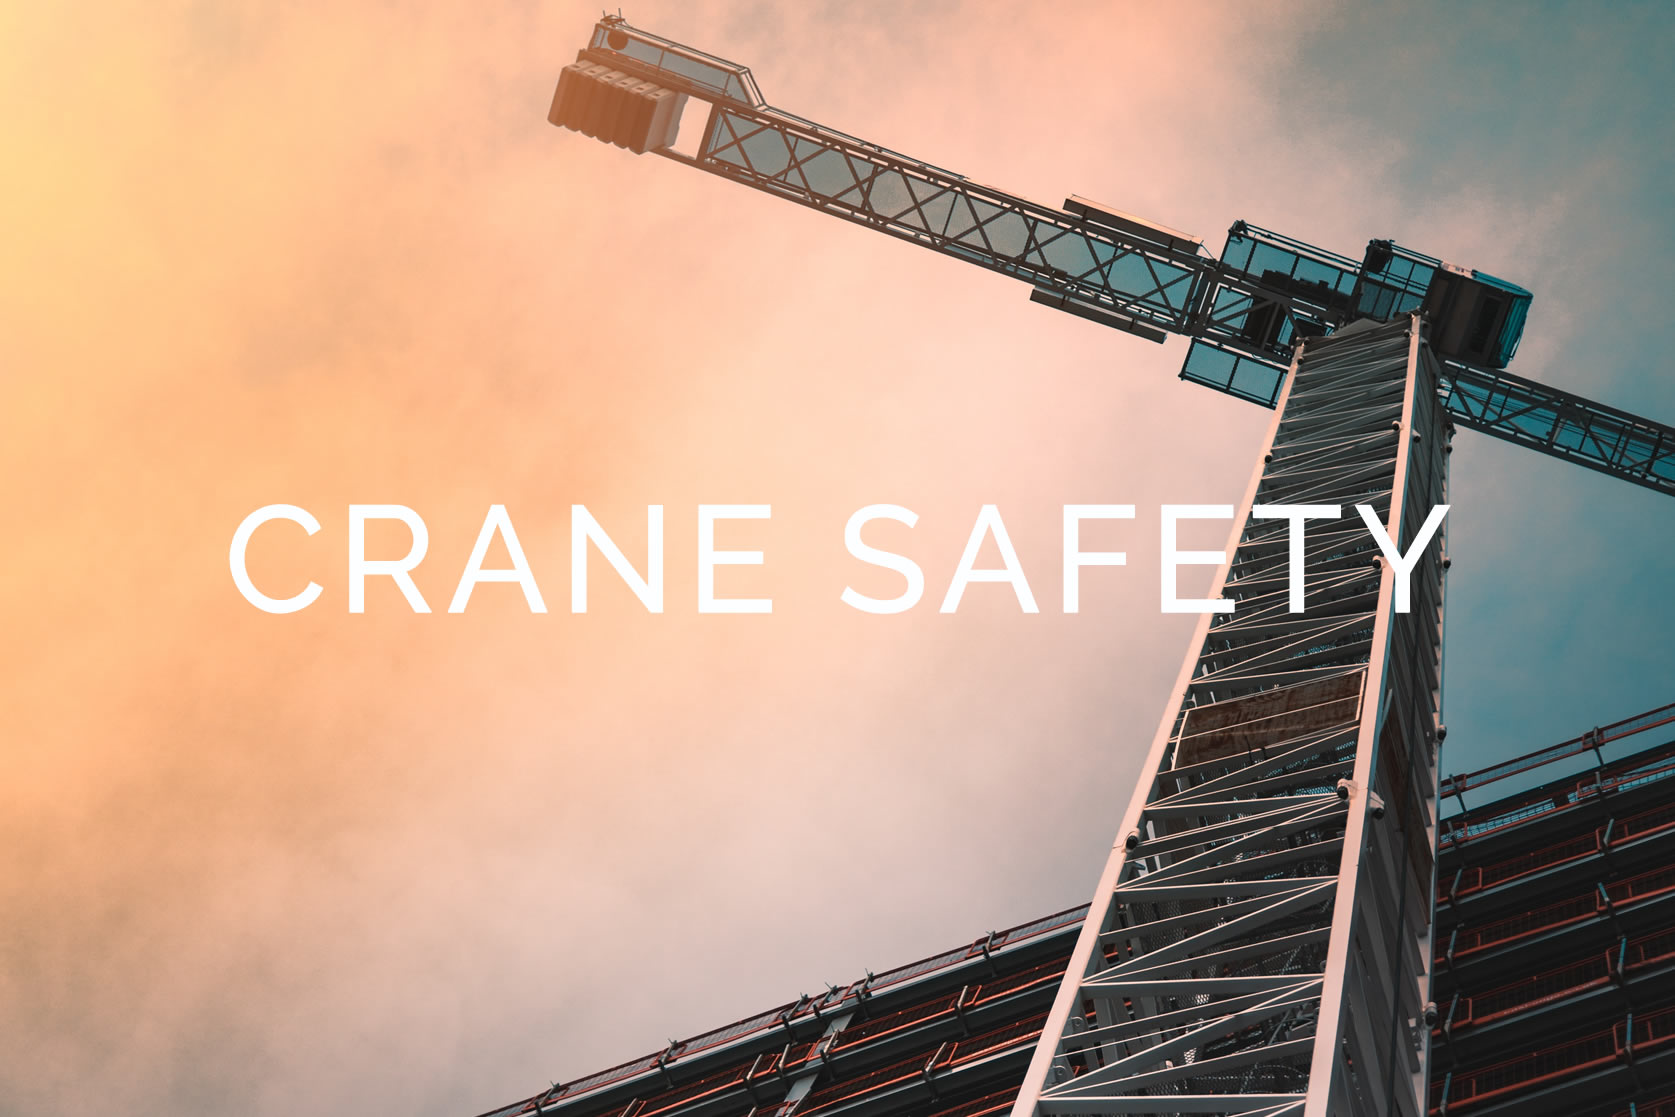 An Essential Tool for Crane Safety WoodsCan Hornet Rechargeable Electric Air Horn - the world's most advanced signaling device for industrial and recreational safety.